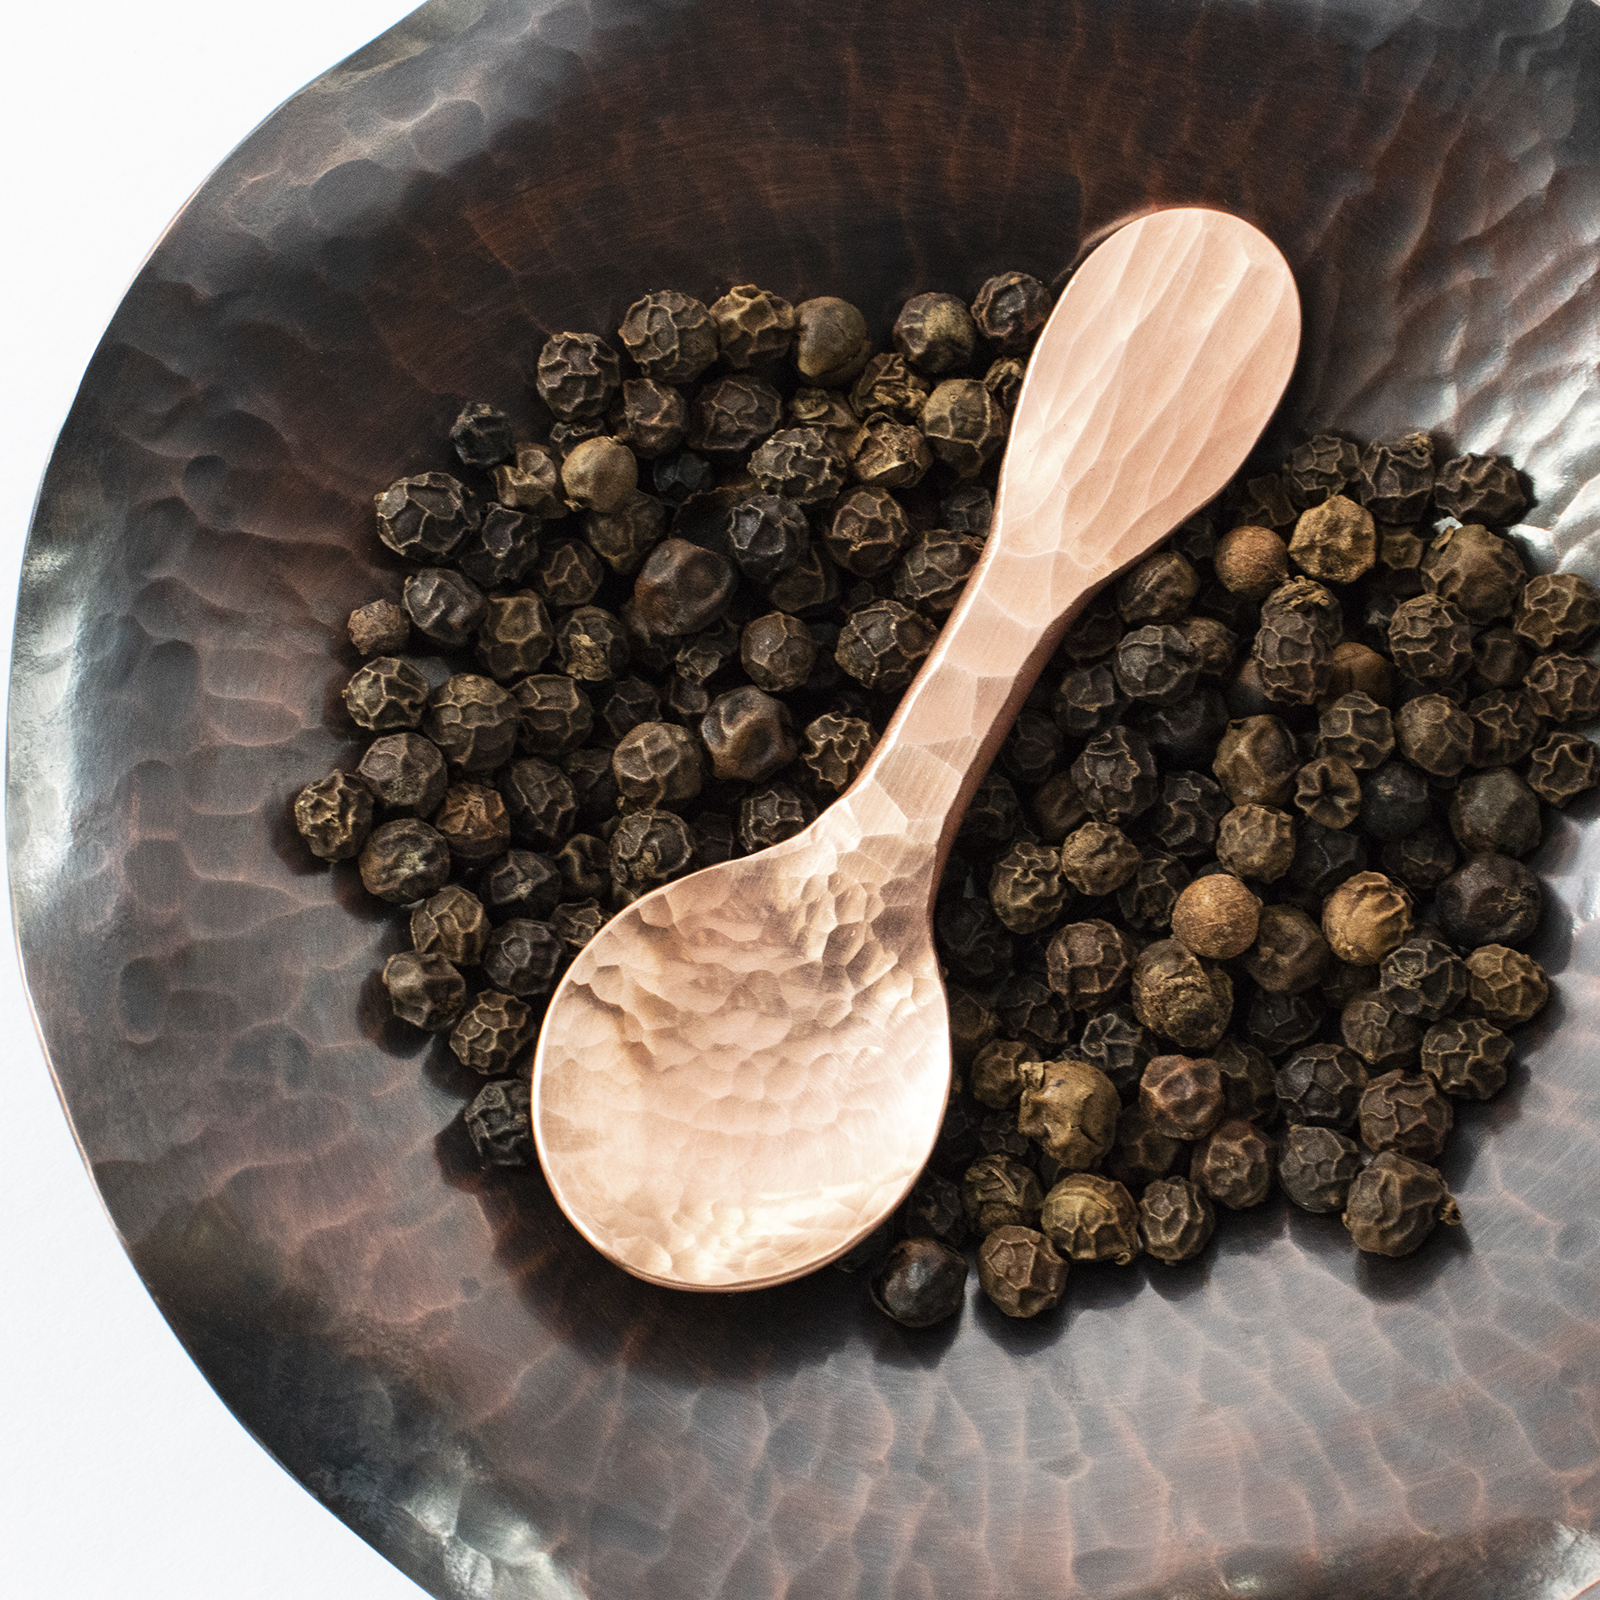 Tasting Spoon on peppercorns_1